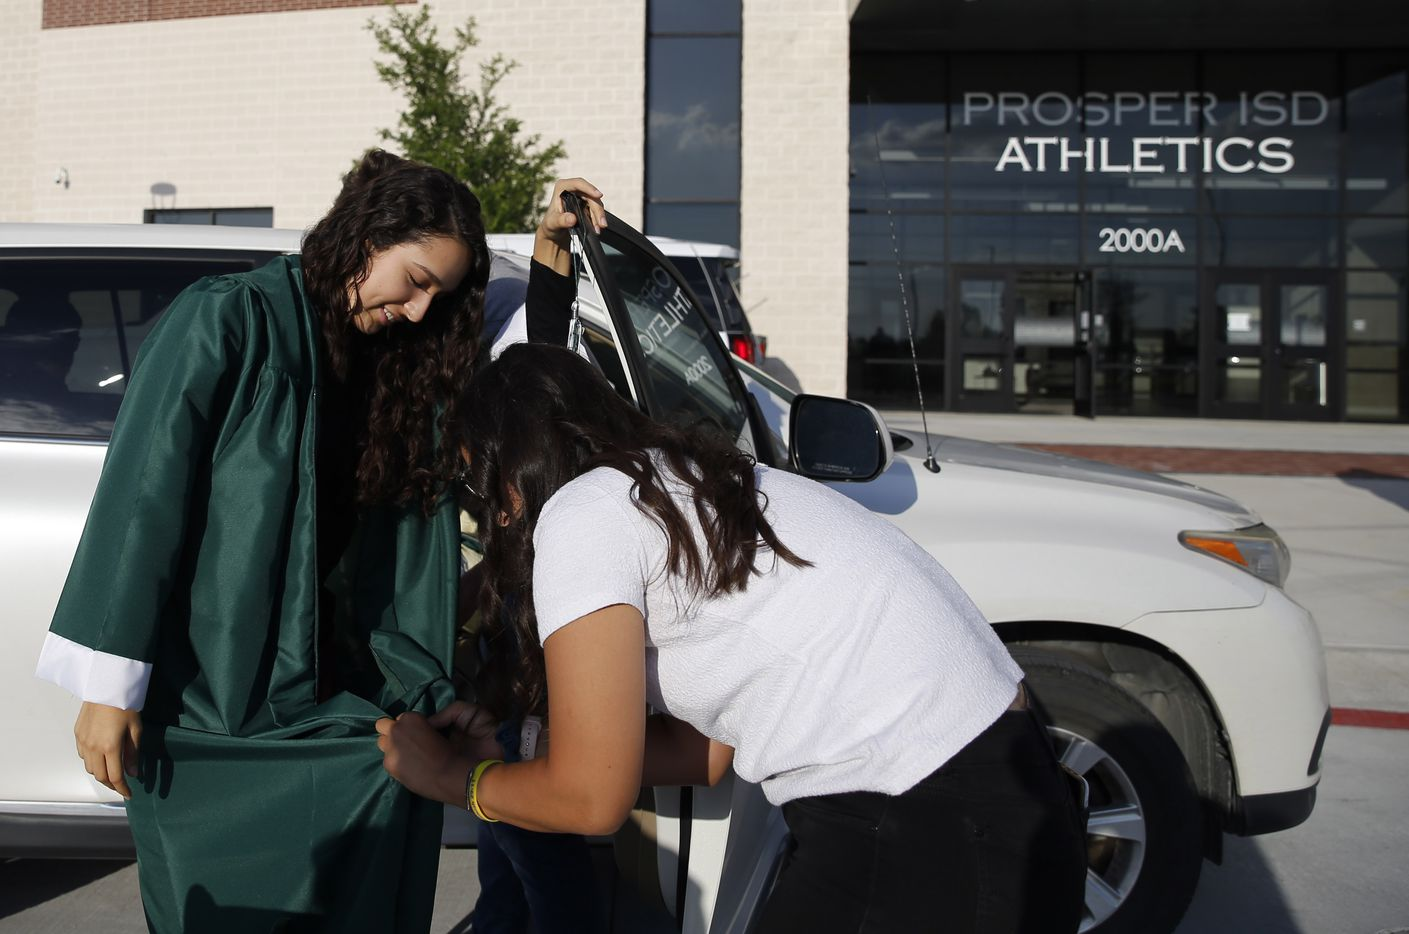 Prosper High School softball player Lexie Bell gets help from her sister Tori Bell with her gown prior to Prosper High School's graduation ceremony at Children's Health Stadium in Prosper, Texas on Friday, June 5, 2020. Bell signed to play softball at St. Edward's University. But she was recently diagnosed with Ewing Sarcoma, a rare form of cancer.